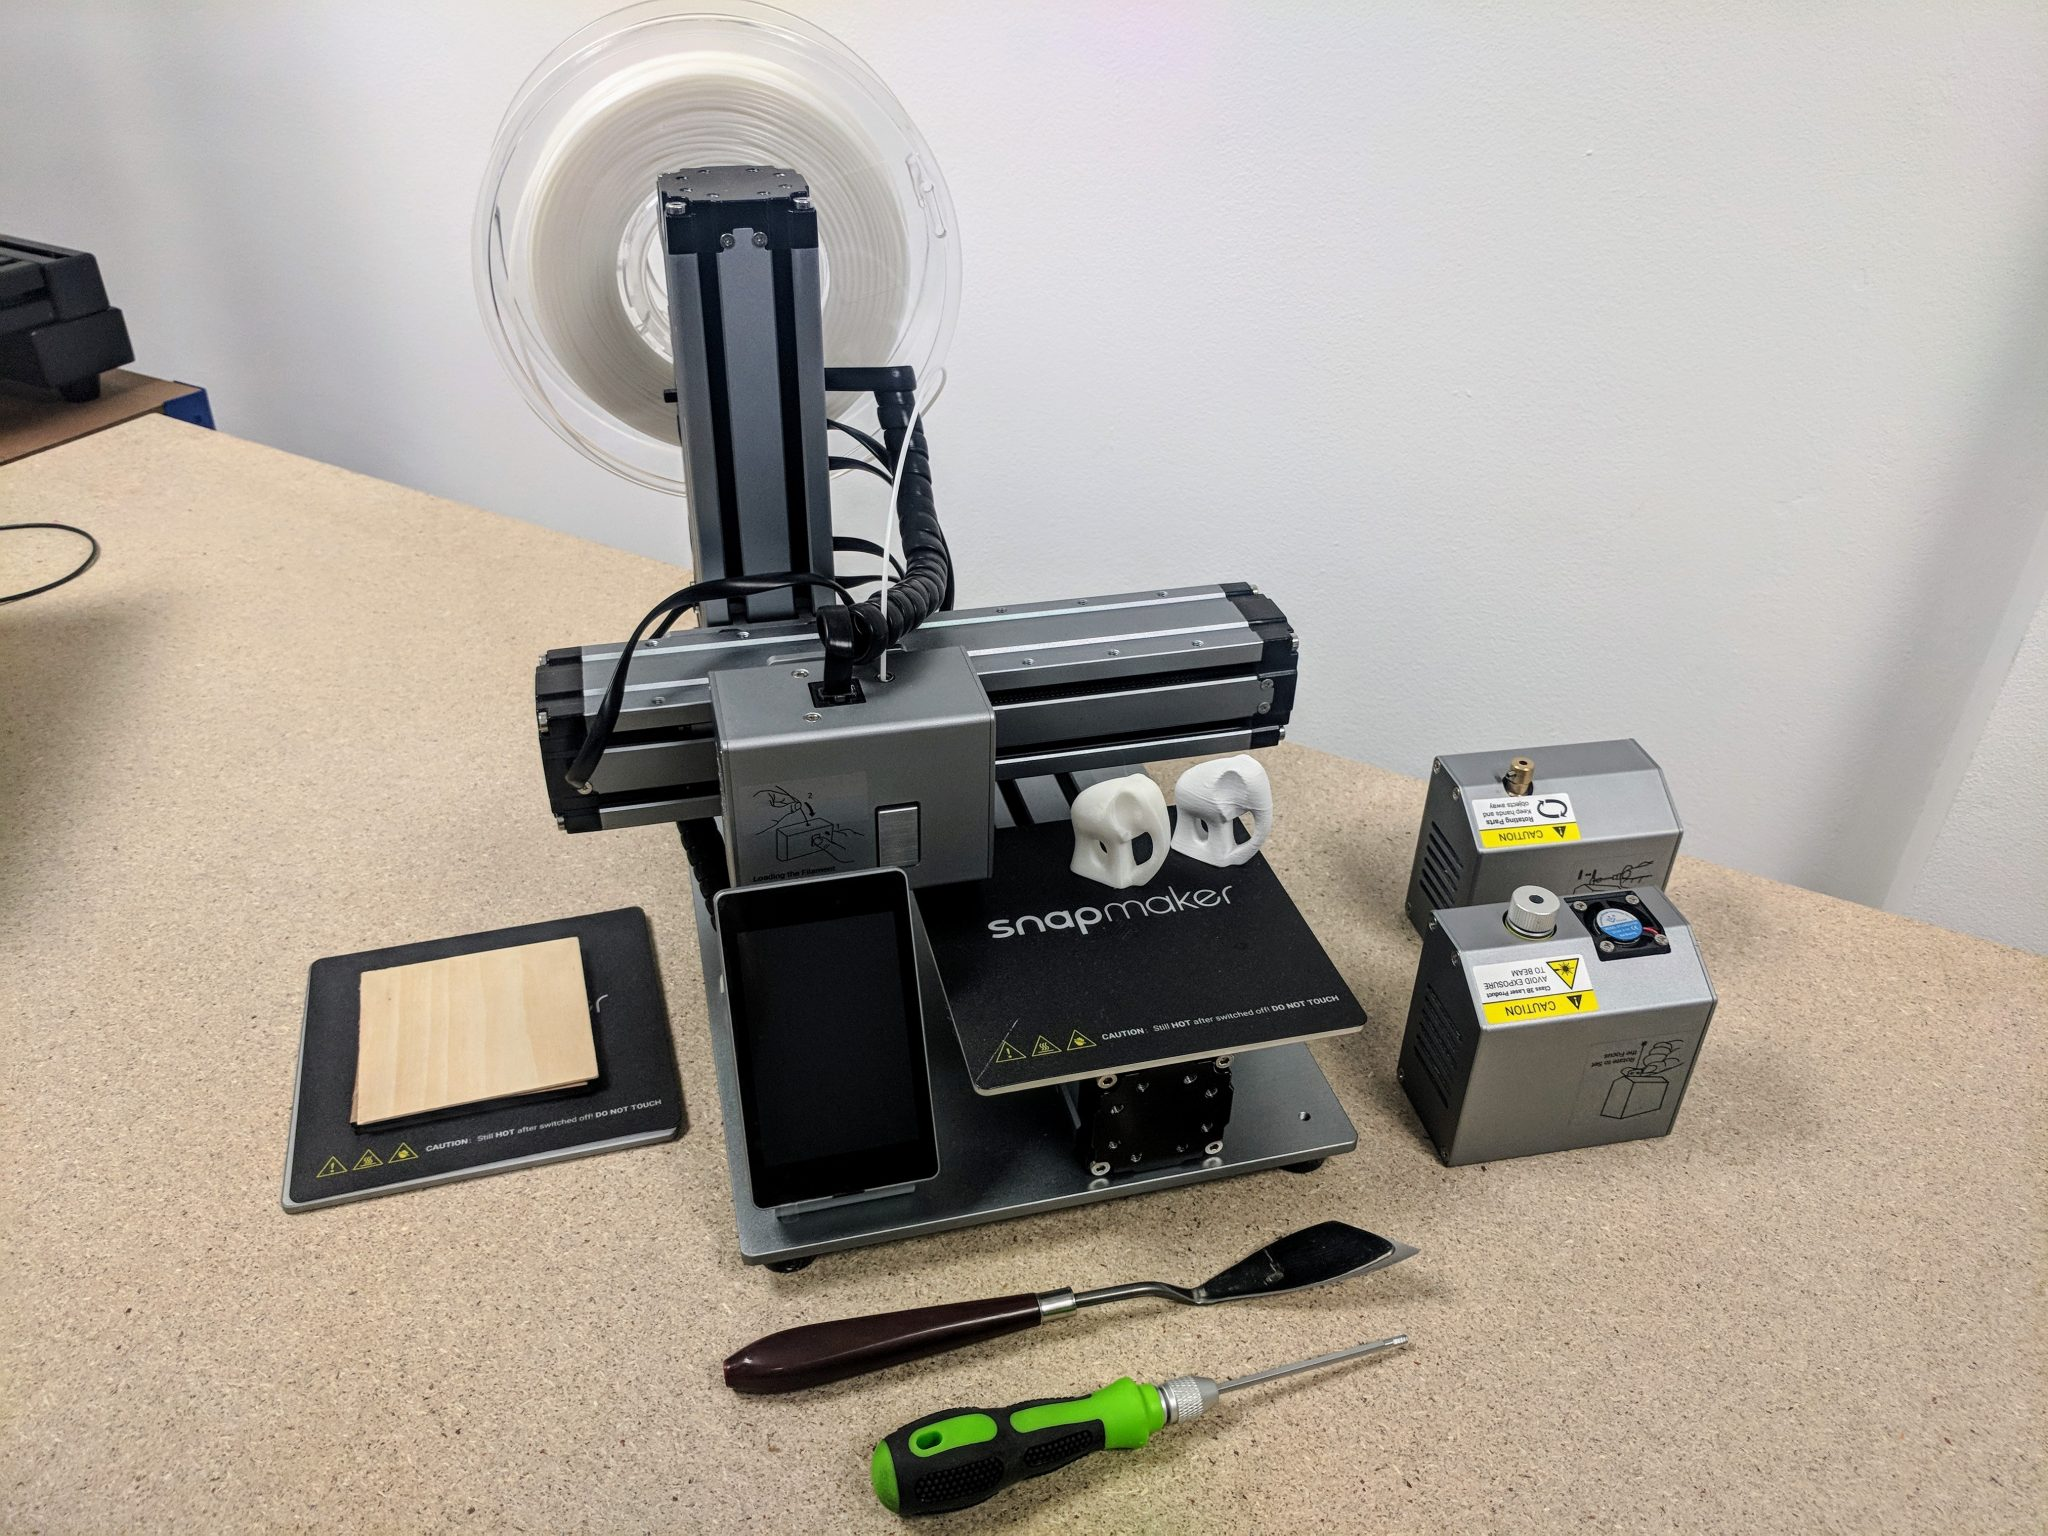 Review: The Snapmaker 3-in-1 3D printer, laser engraver and